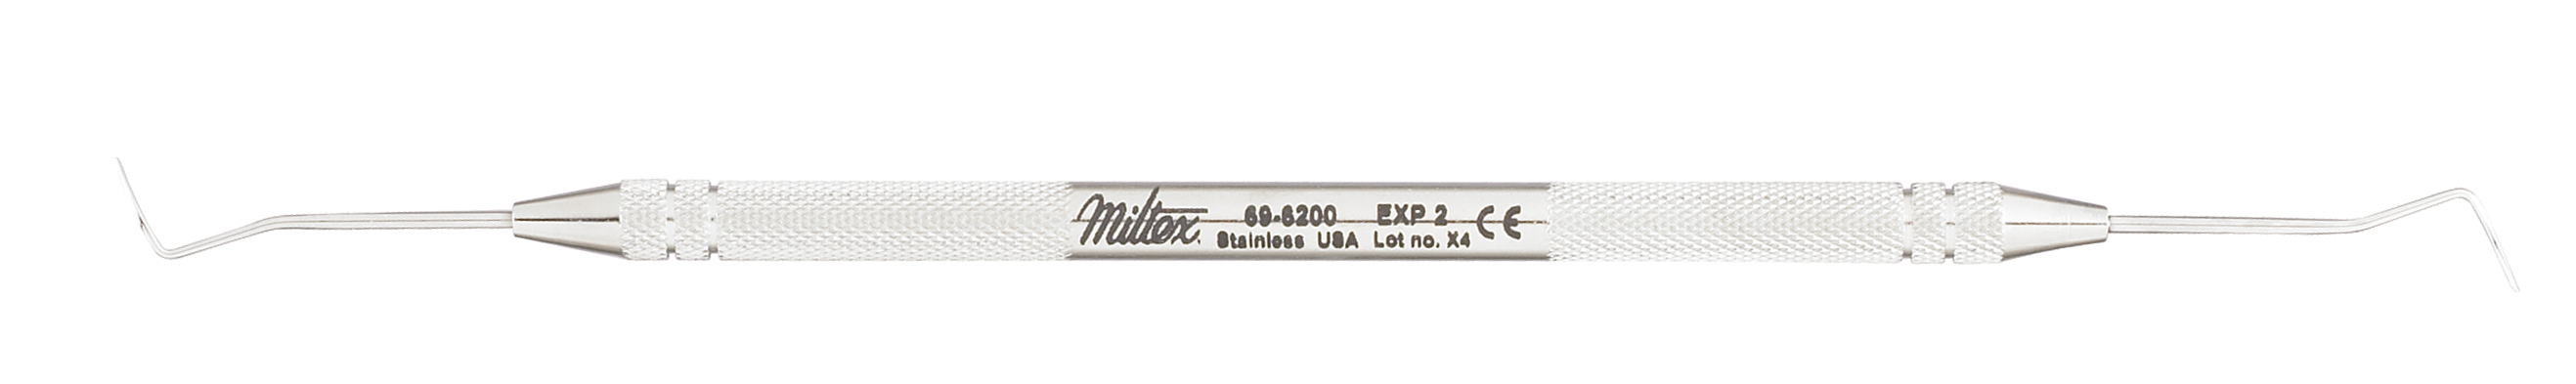 no-2-explorer-double-ended-handle-69-6200-miltex.jpg